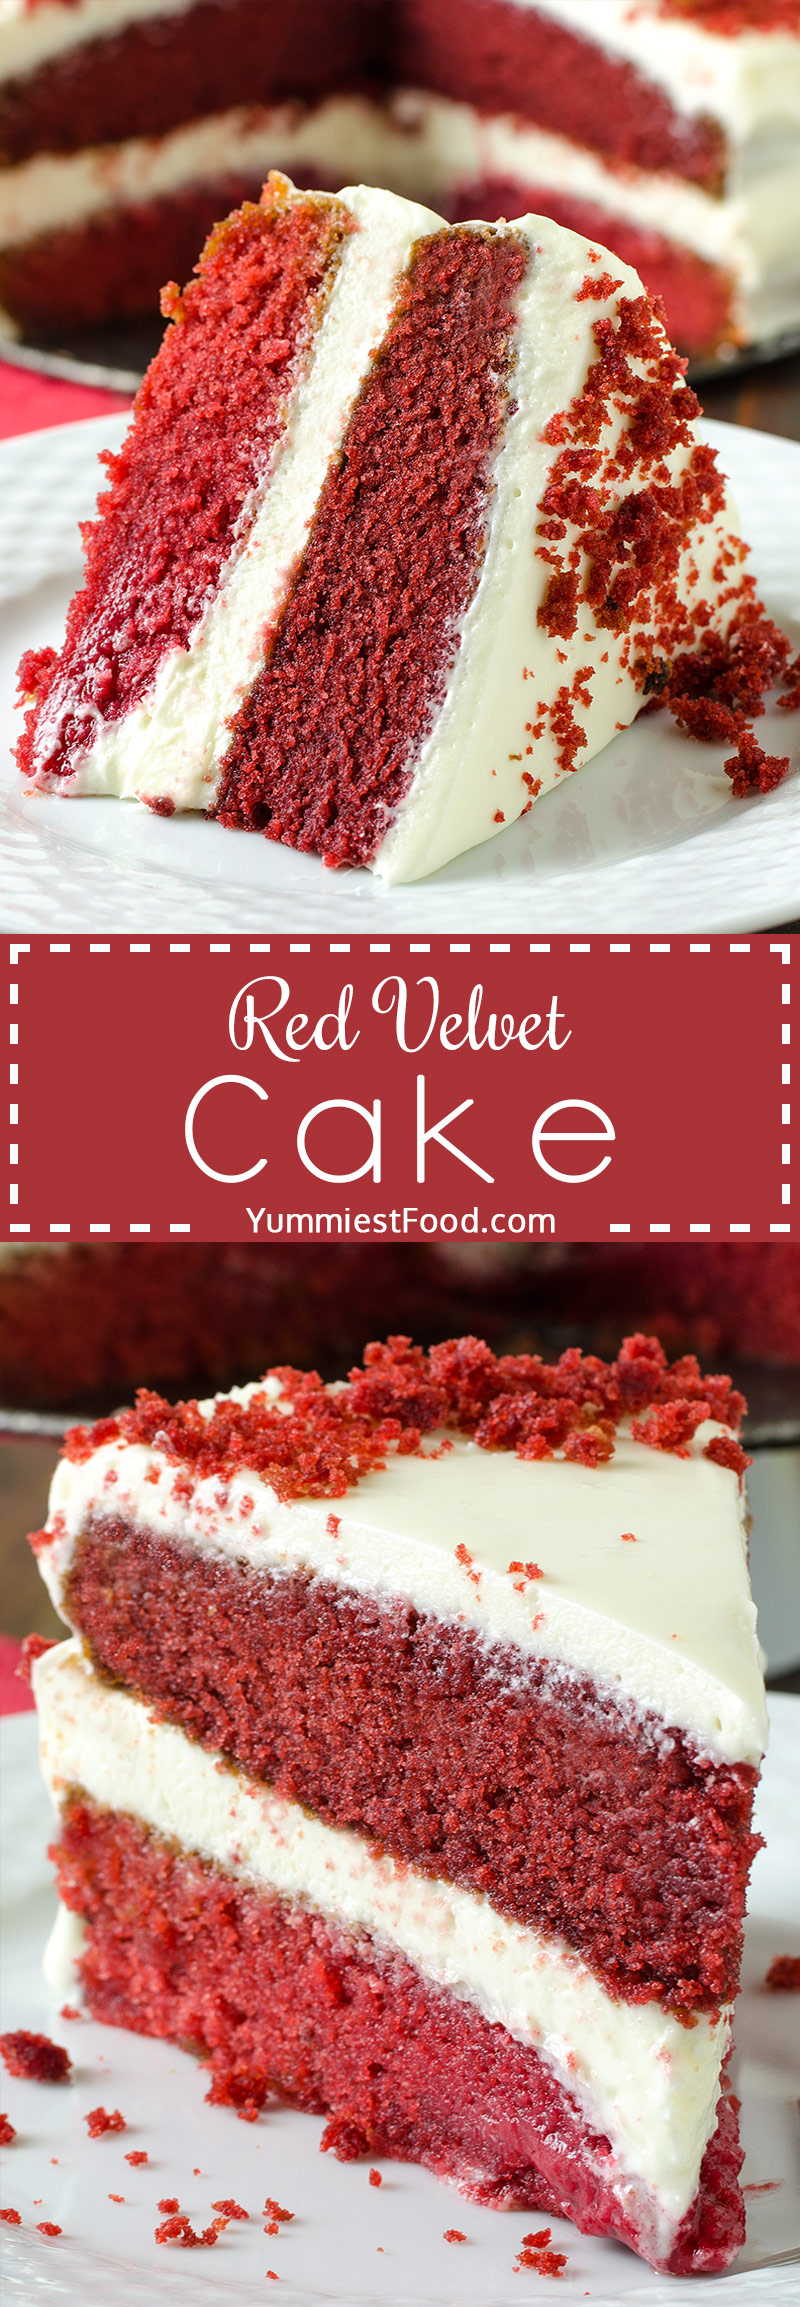 RED VELVET CAKE – Super moist, flavorful and perfect cake with cream cheese frosting! This gorgeous red beauty is the perfect choice of cake for any occasion!